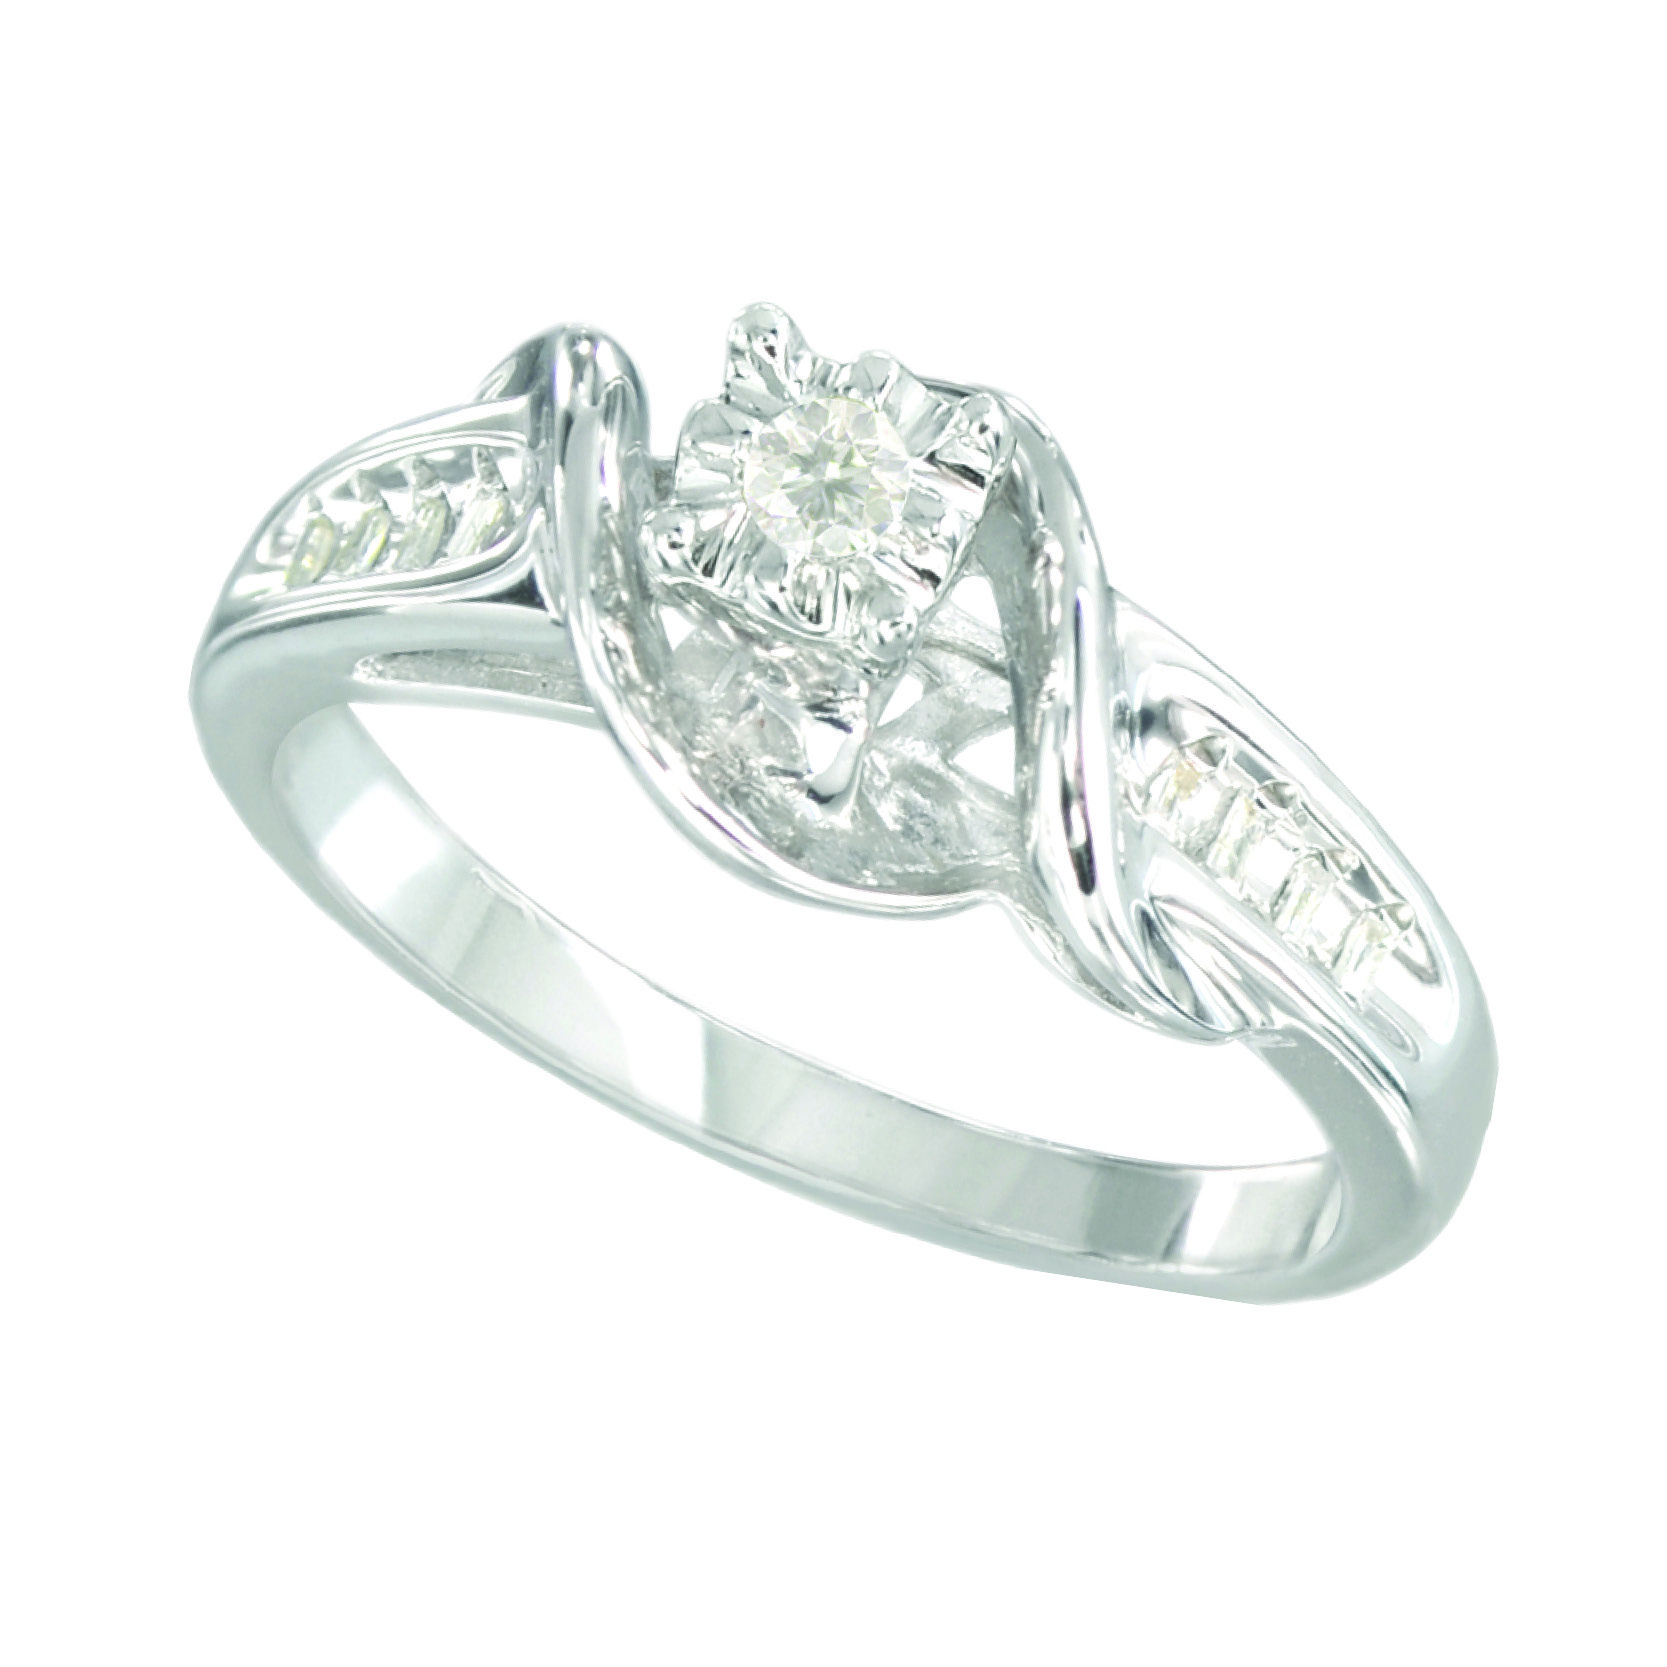 10 Best Images About Three Wishes On Pinterest Solitaire Enhancer Wedding  Ring And Silver Engagement Rings